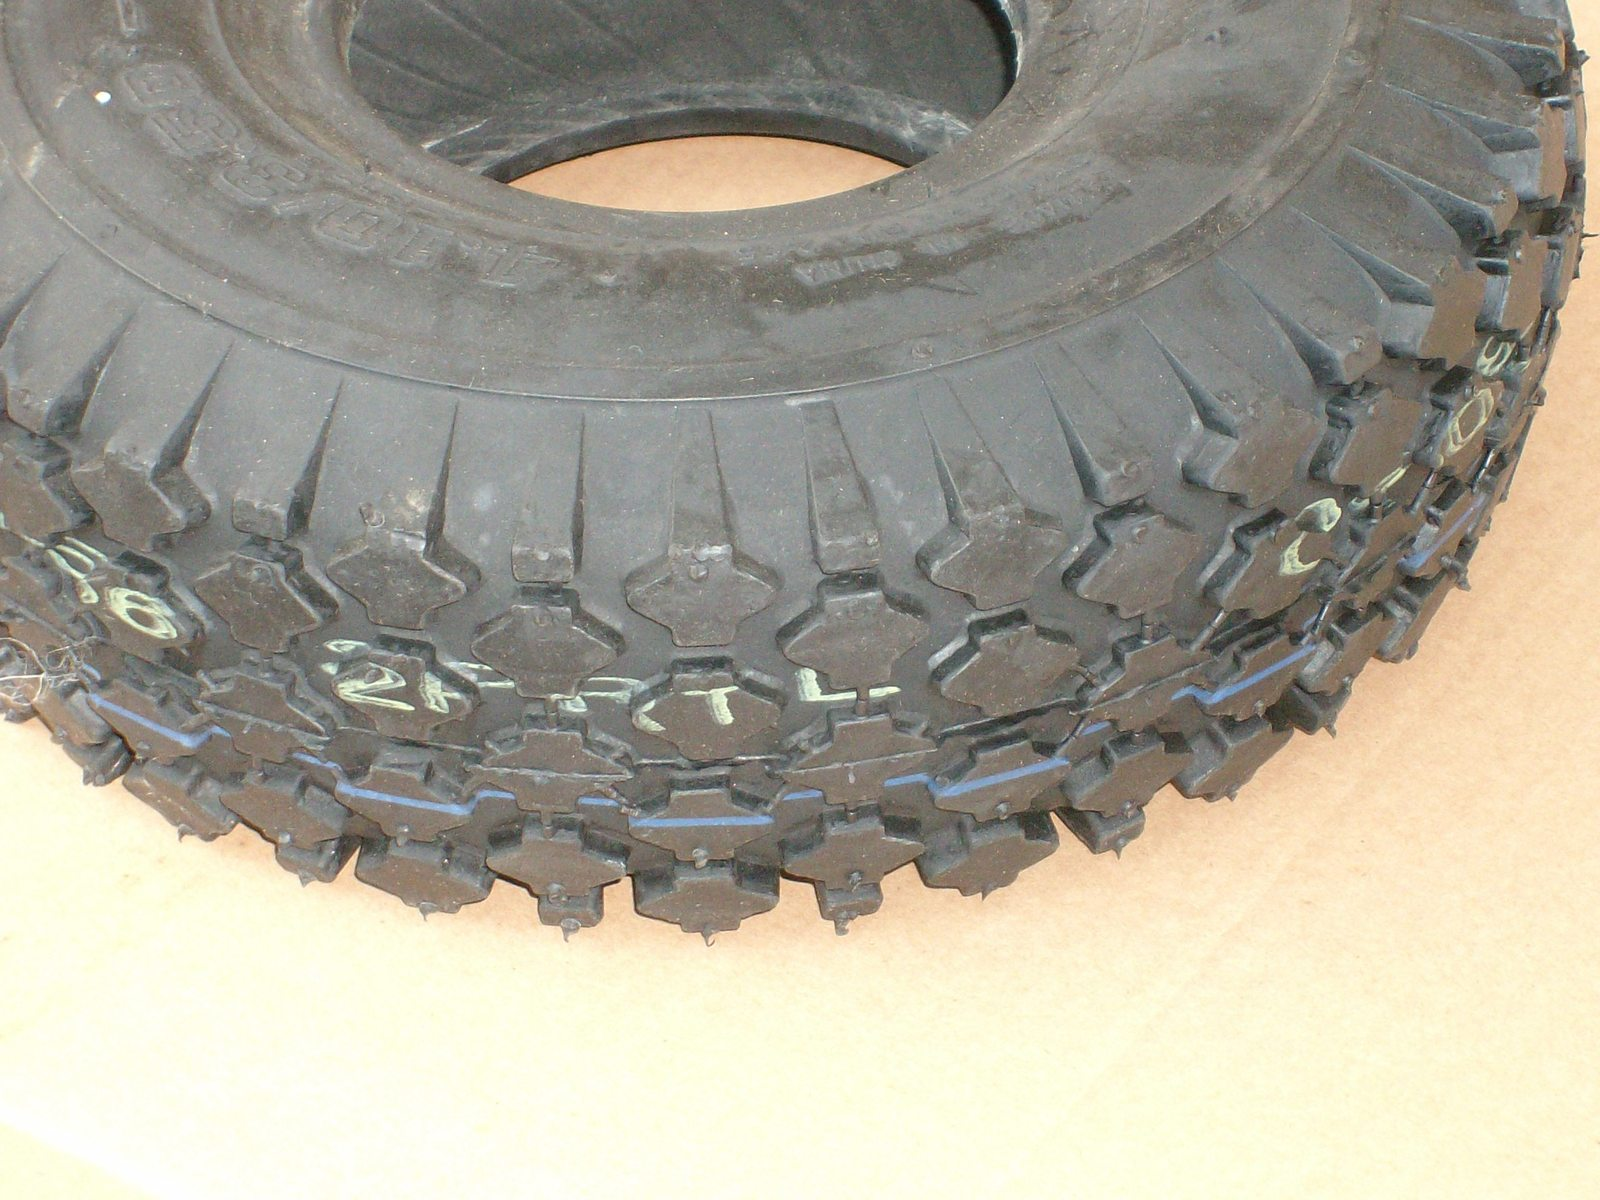 Snapper and Craftsman lawn mower front tire 410x3.50-4